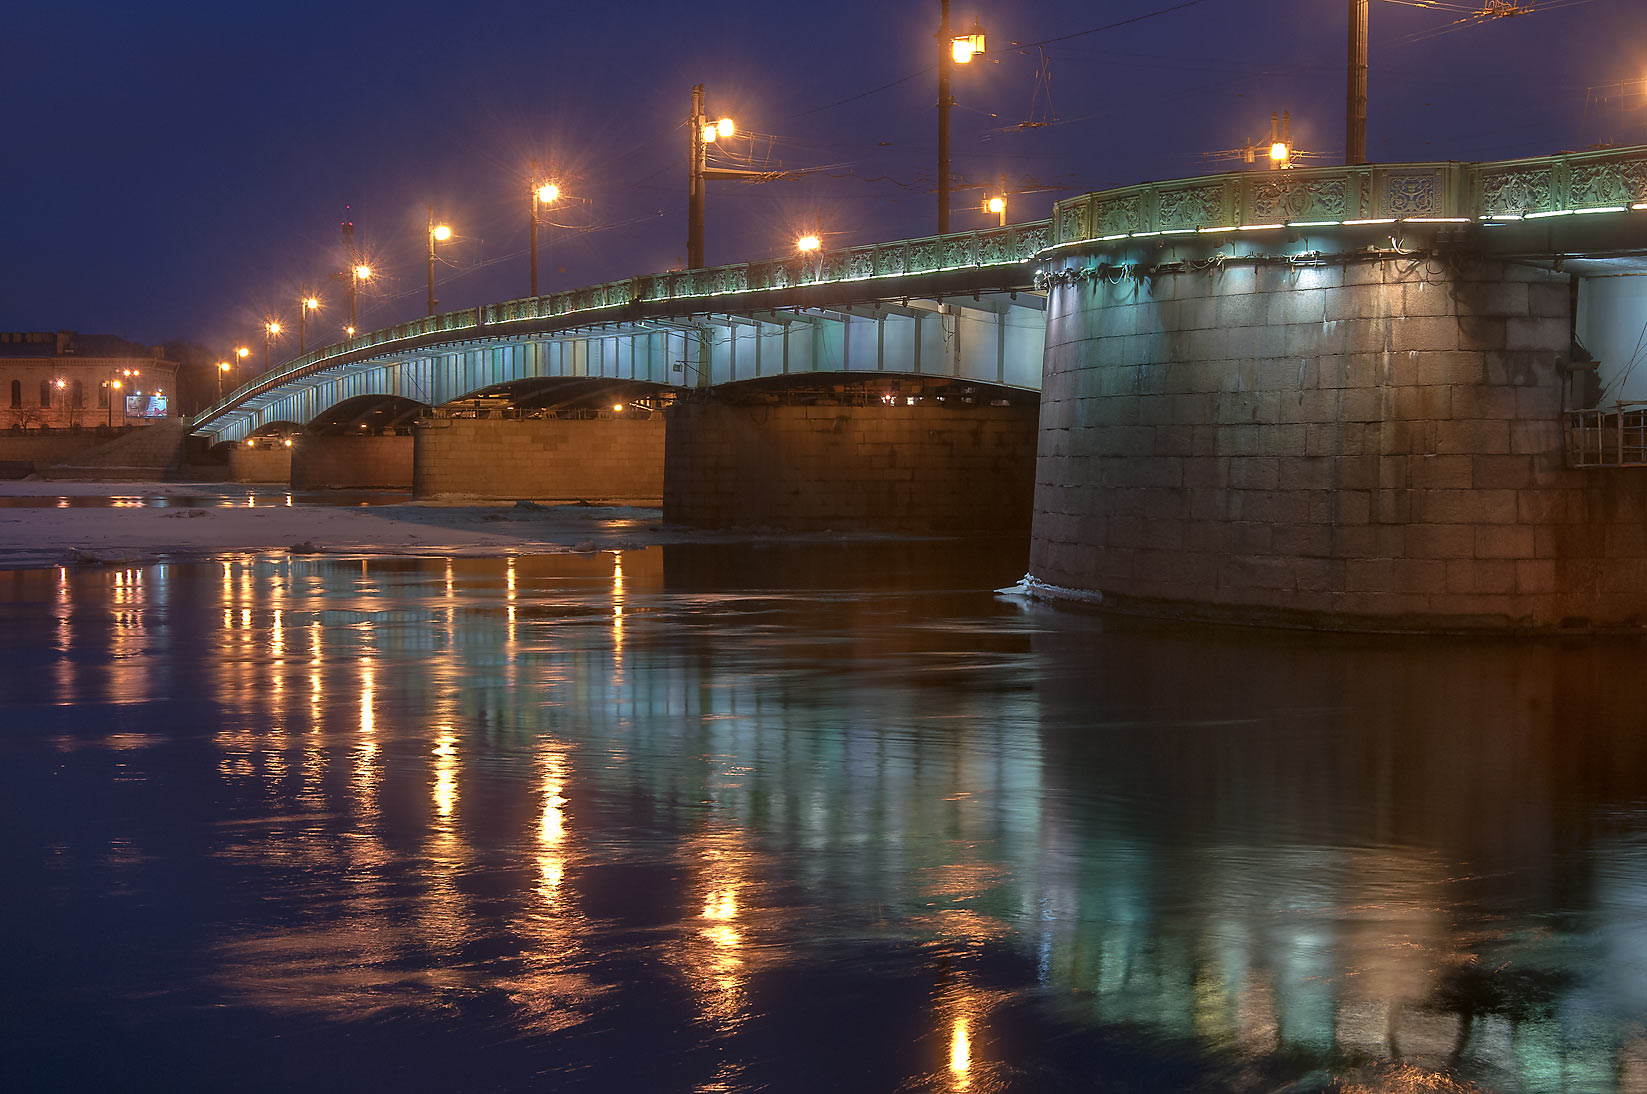 Liteyny Bridge at evening. St.Petersburg, Russia